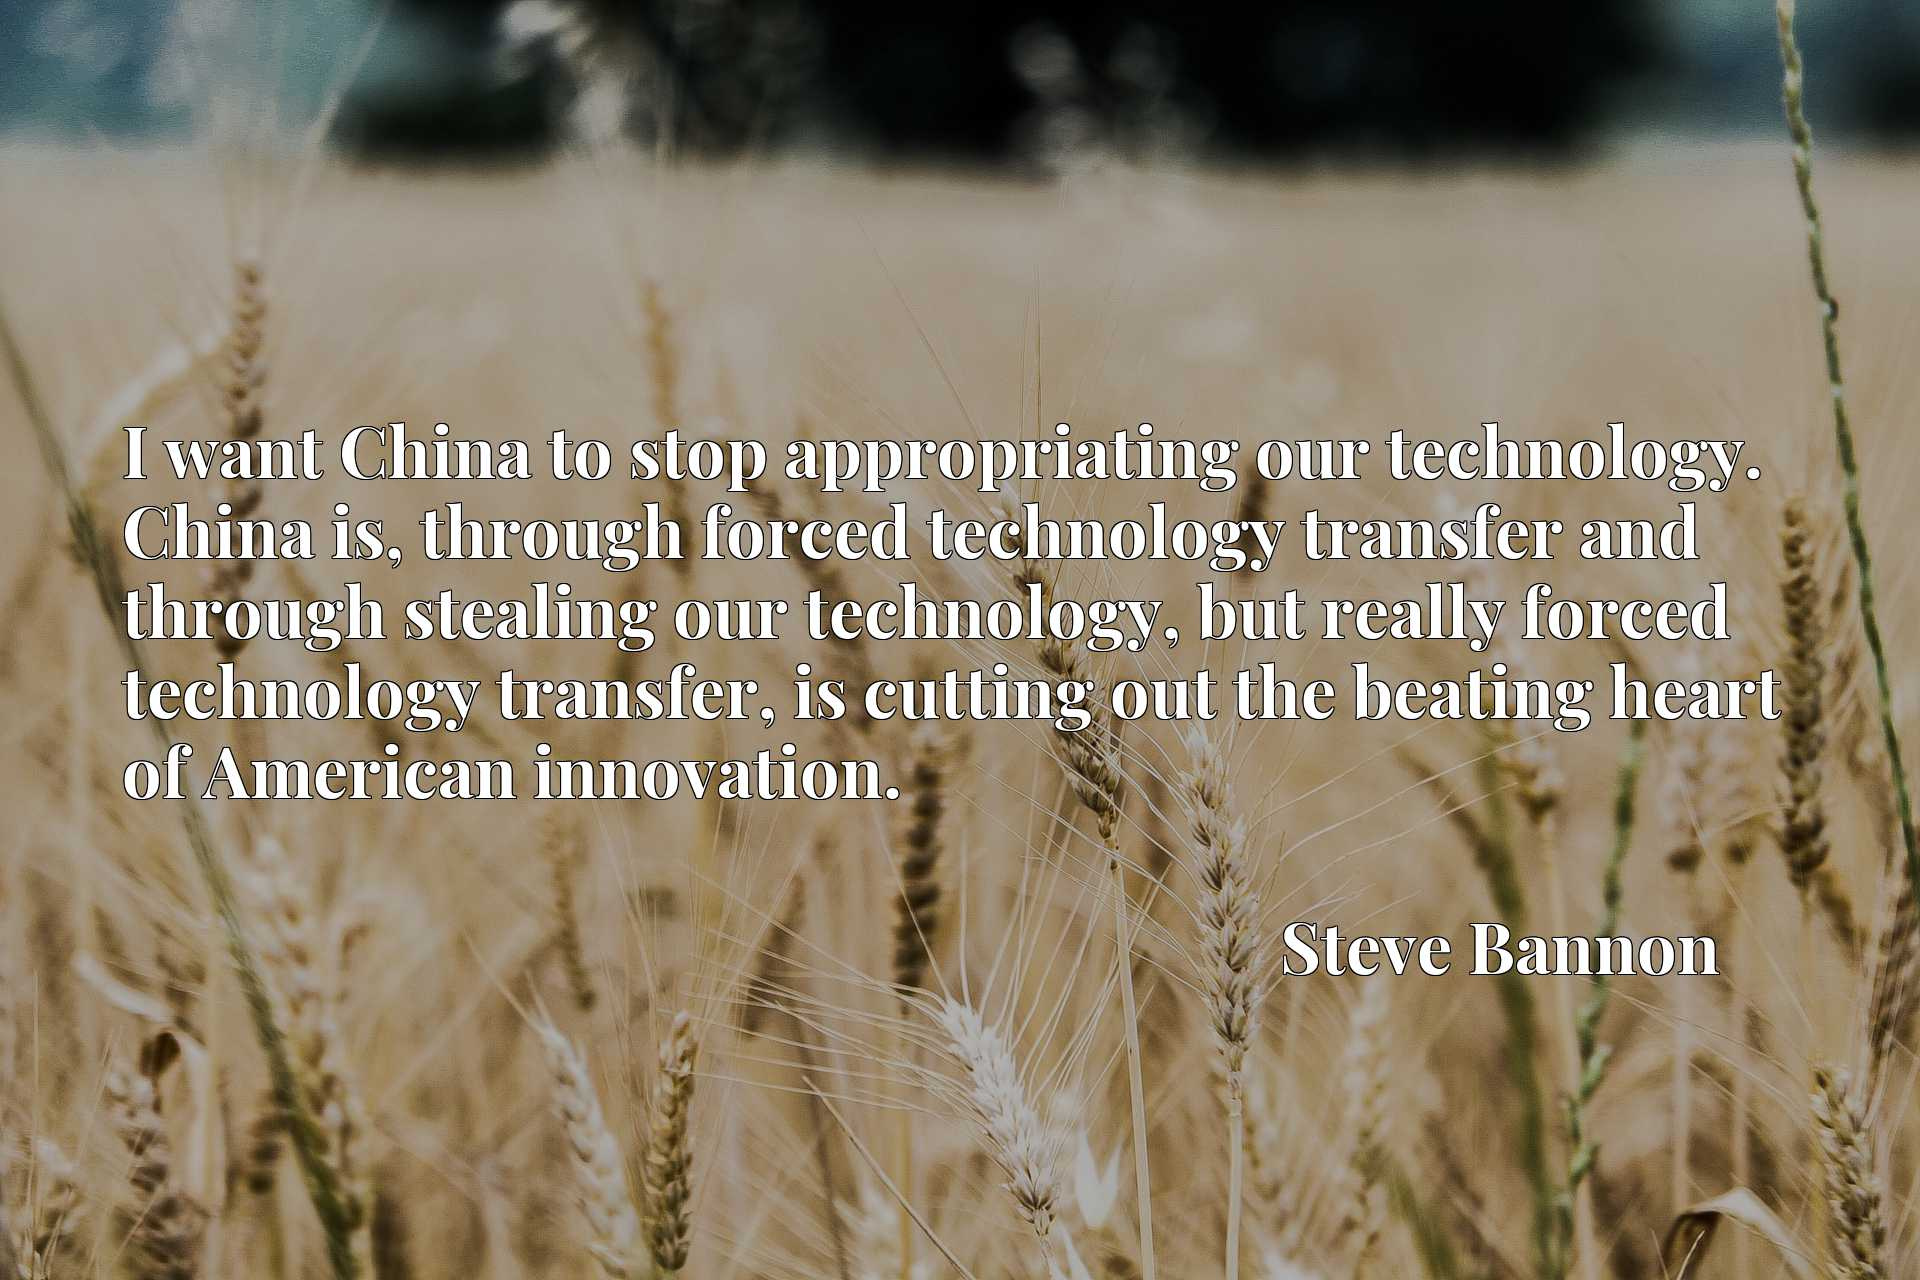 I want China to stop appropriating our technology. China is, through forced technology transfer and through stealing our technology, but really forced technology transfer, is cutting out the beating heart of American innovation.